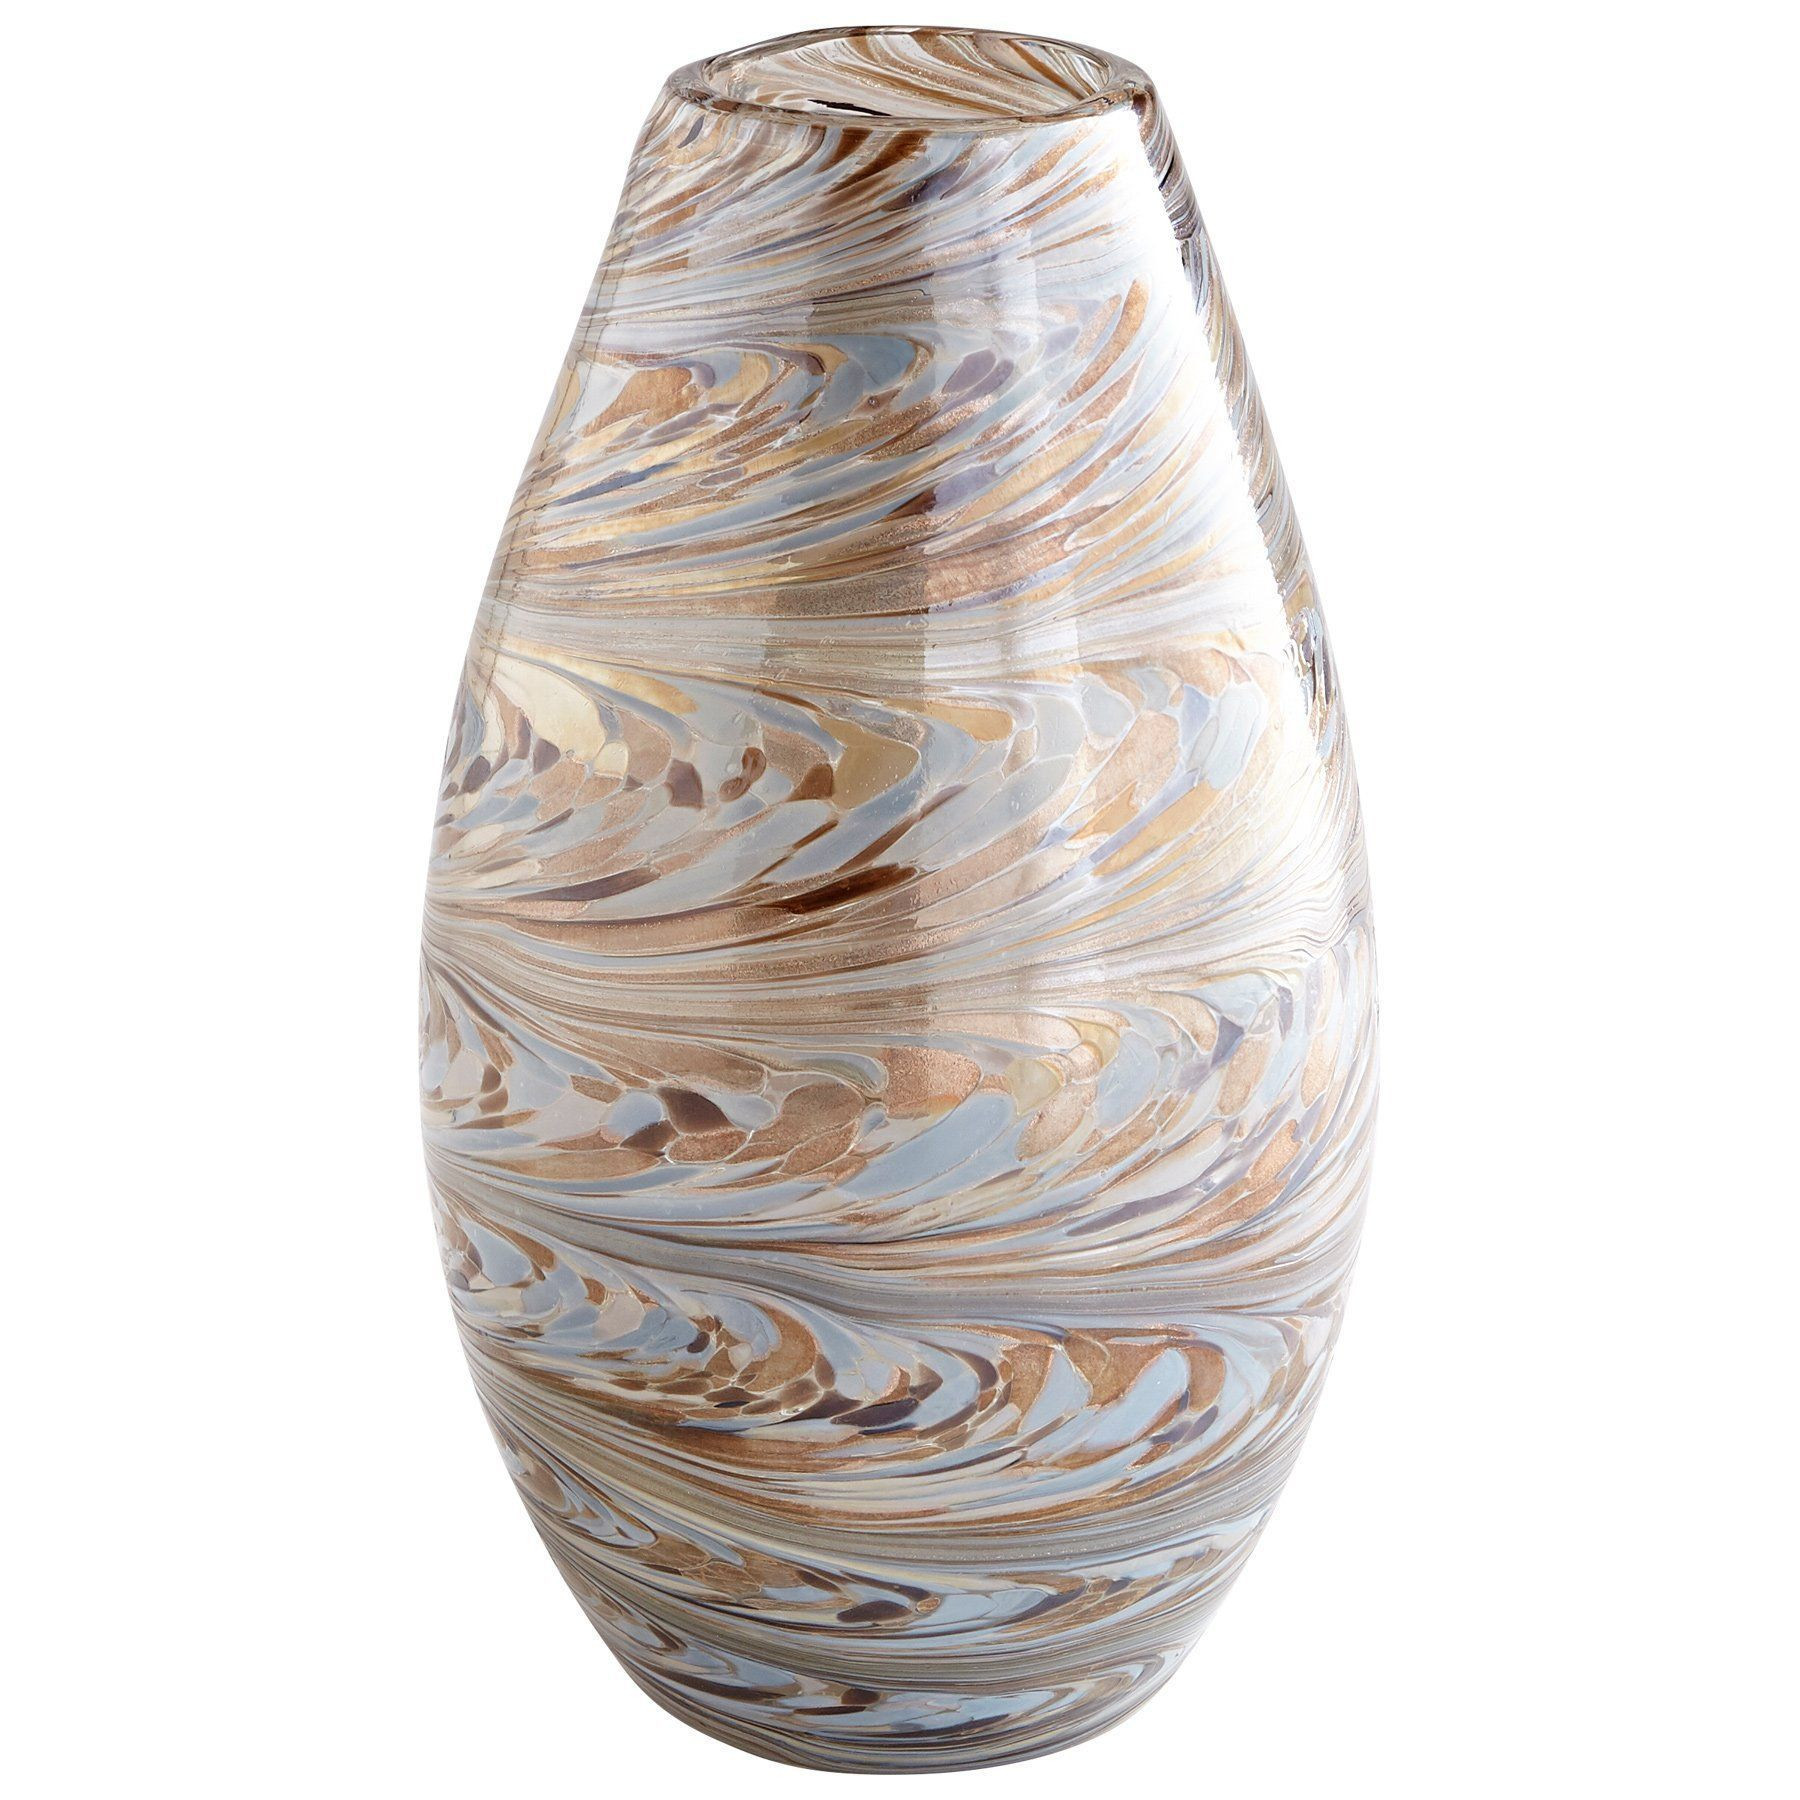 lenox vases prices of 44 gold and silver vase the weekly world for caravelas small gold silver metallic sand swirl art glass vase by